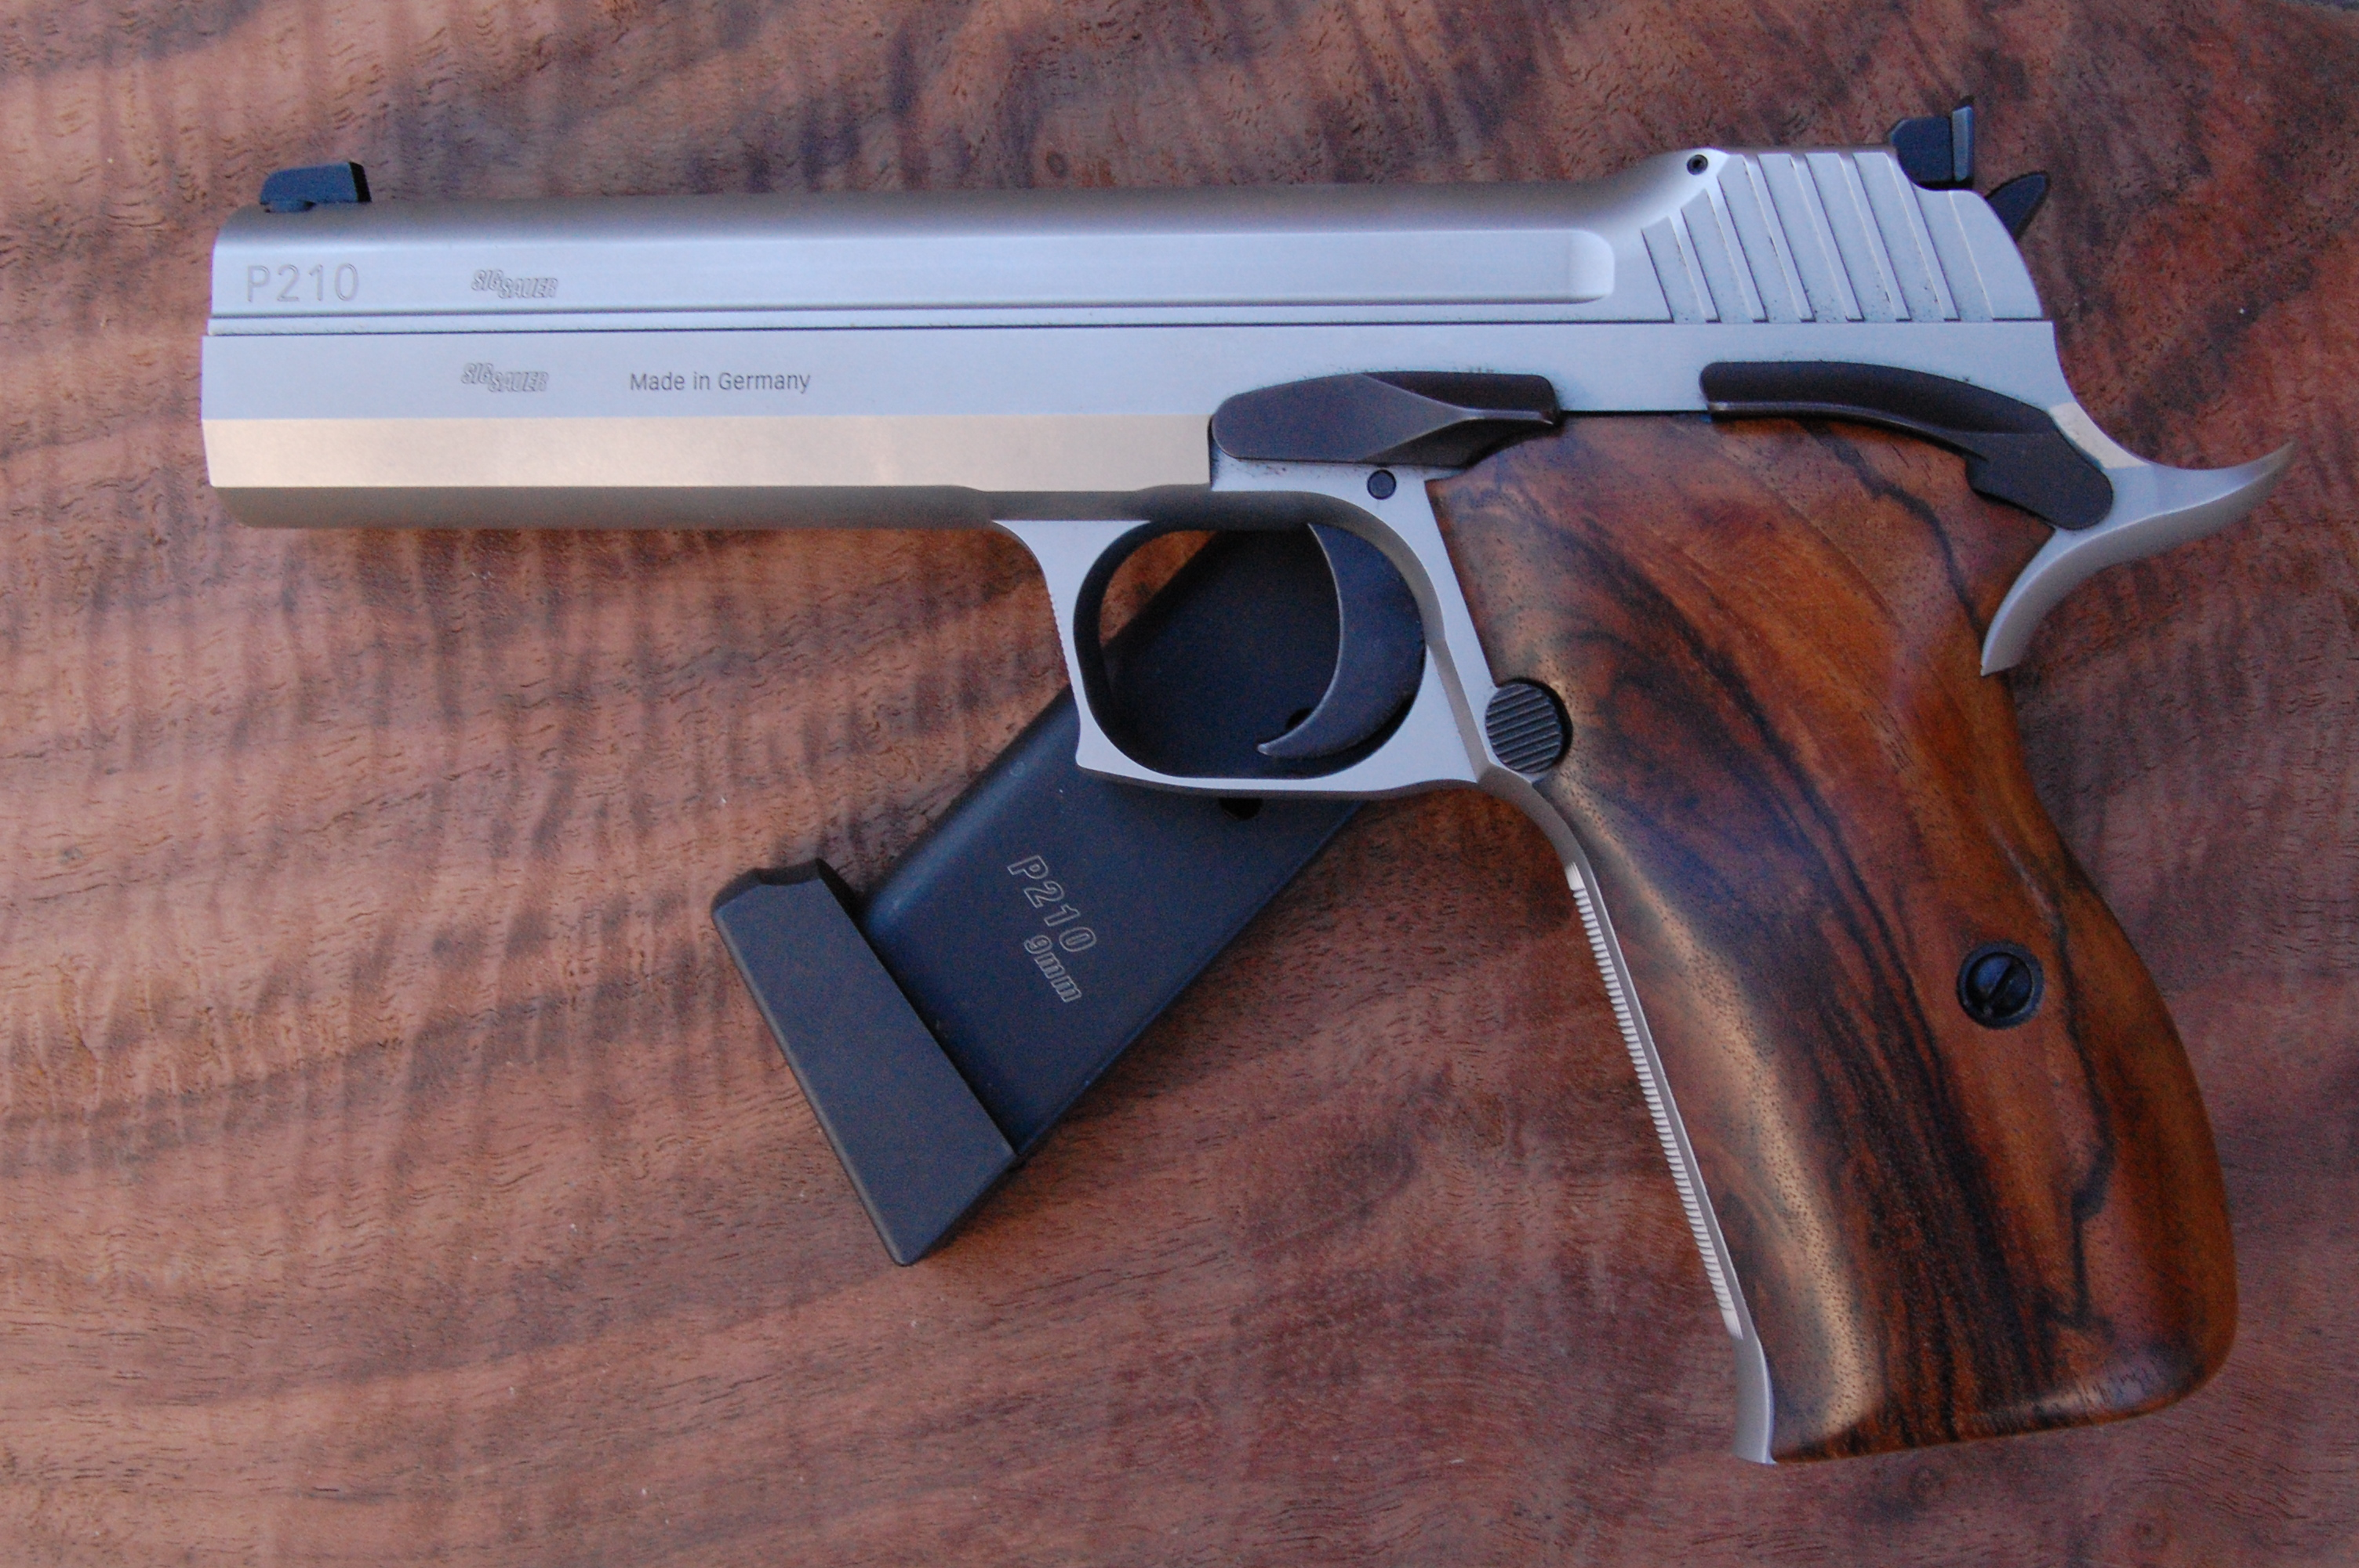 SIG P210 Super Target 5 grips (smooth) - full size